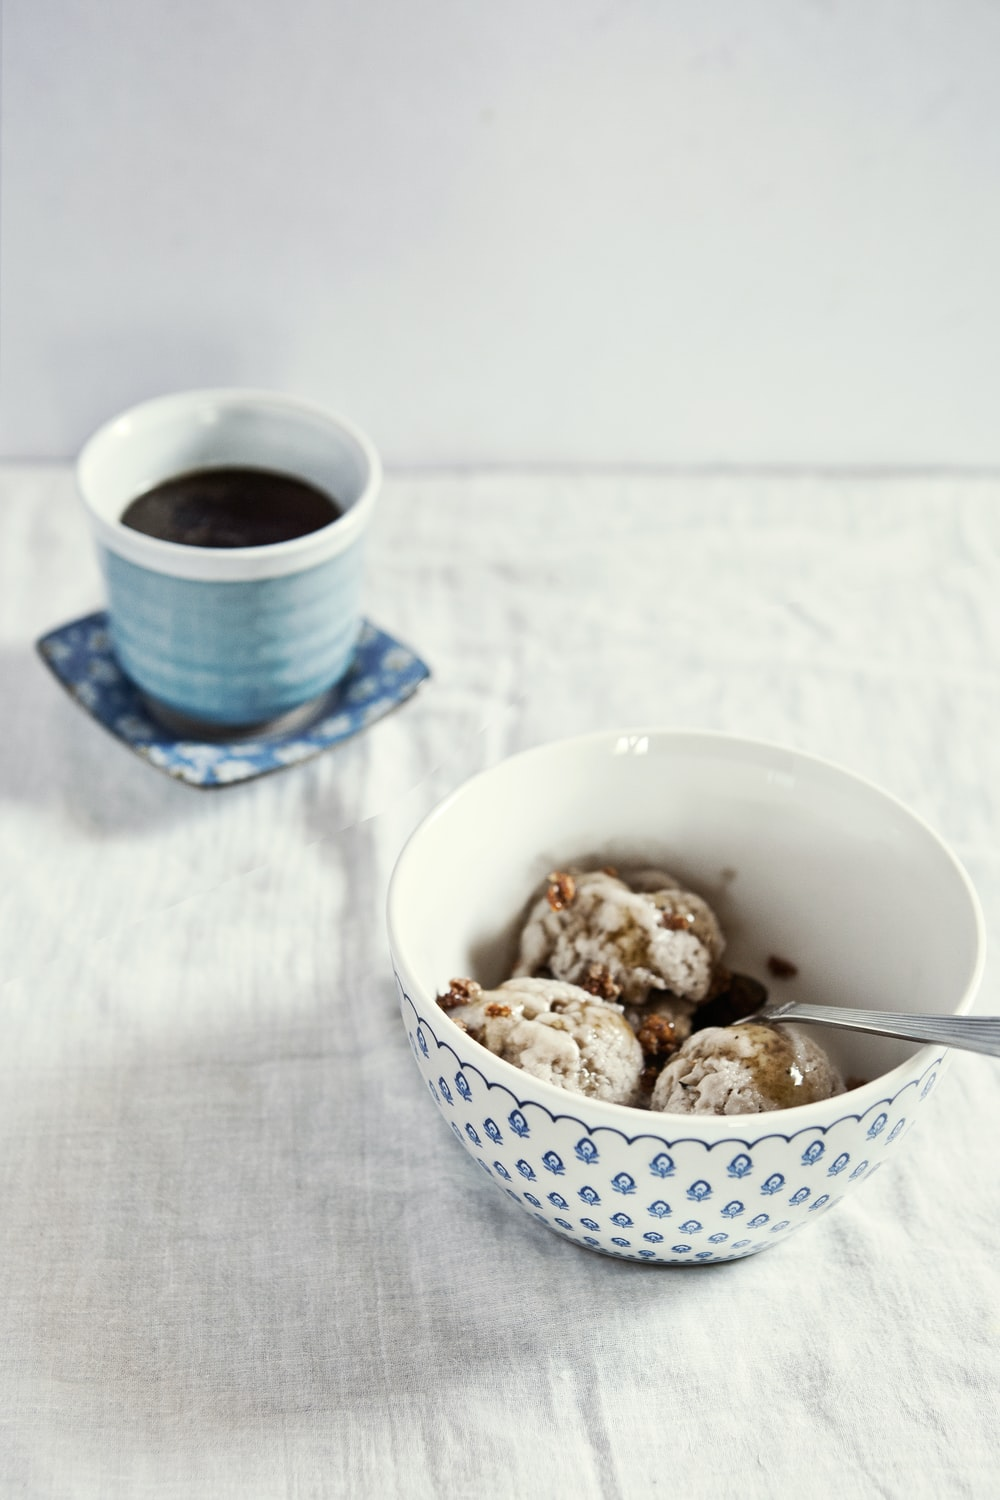 baked pastries in white and blue ceramic bowl